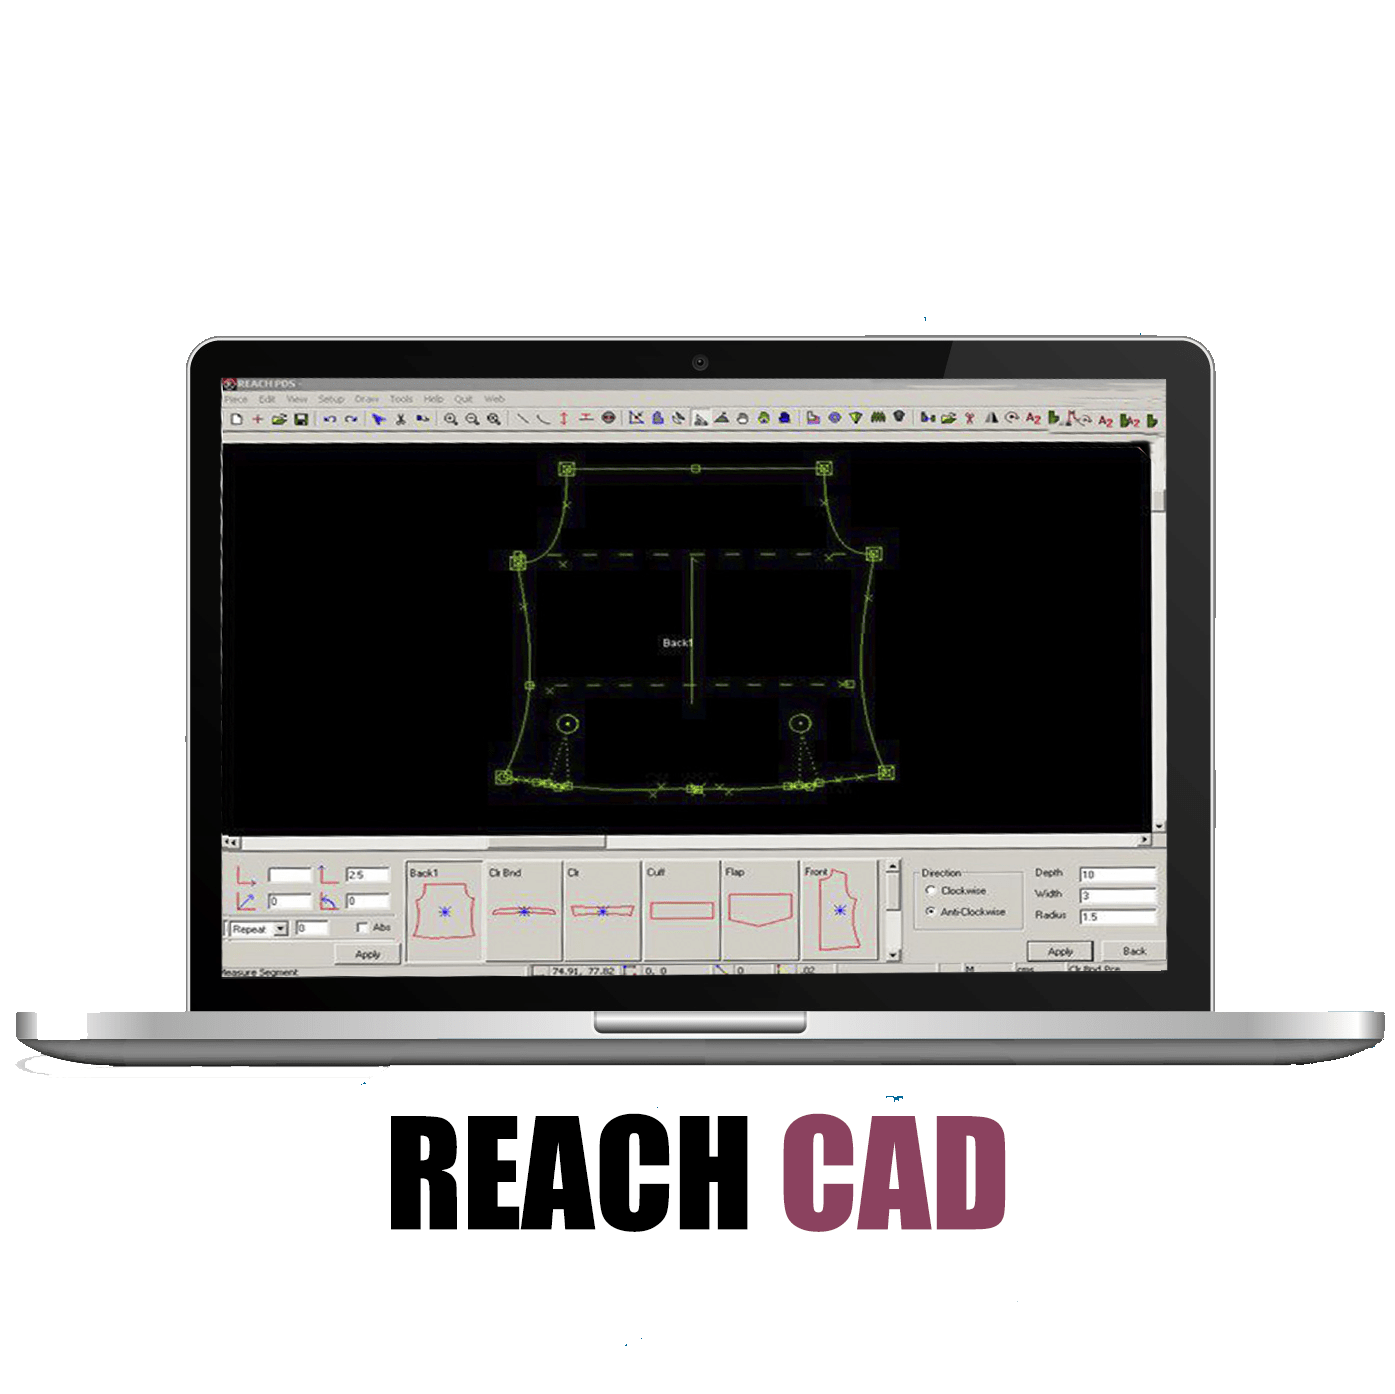 garment-cad-software-reach-cad-1